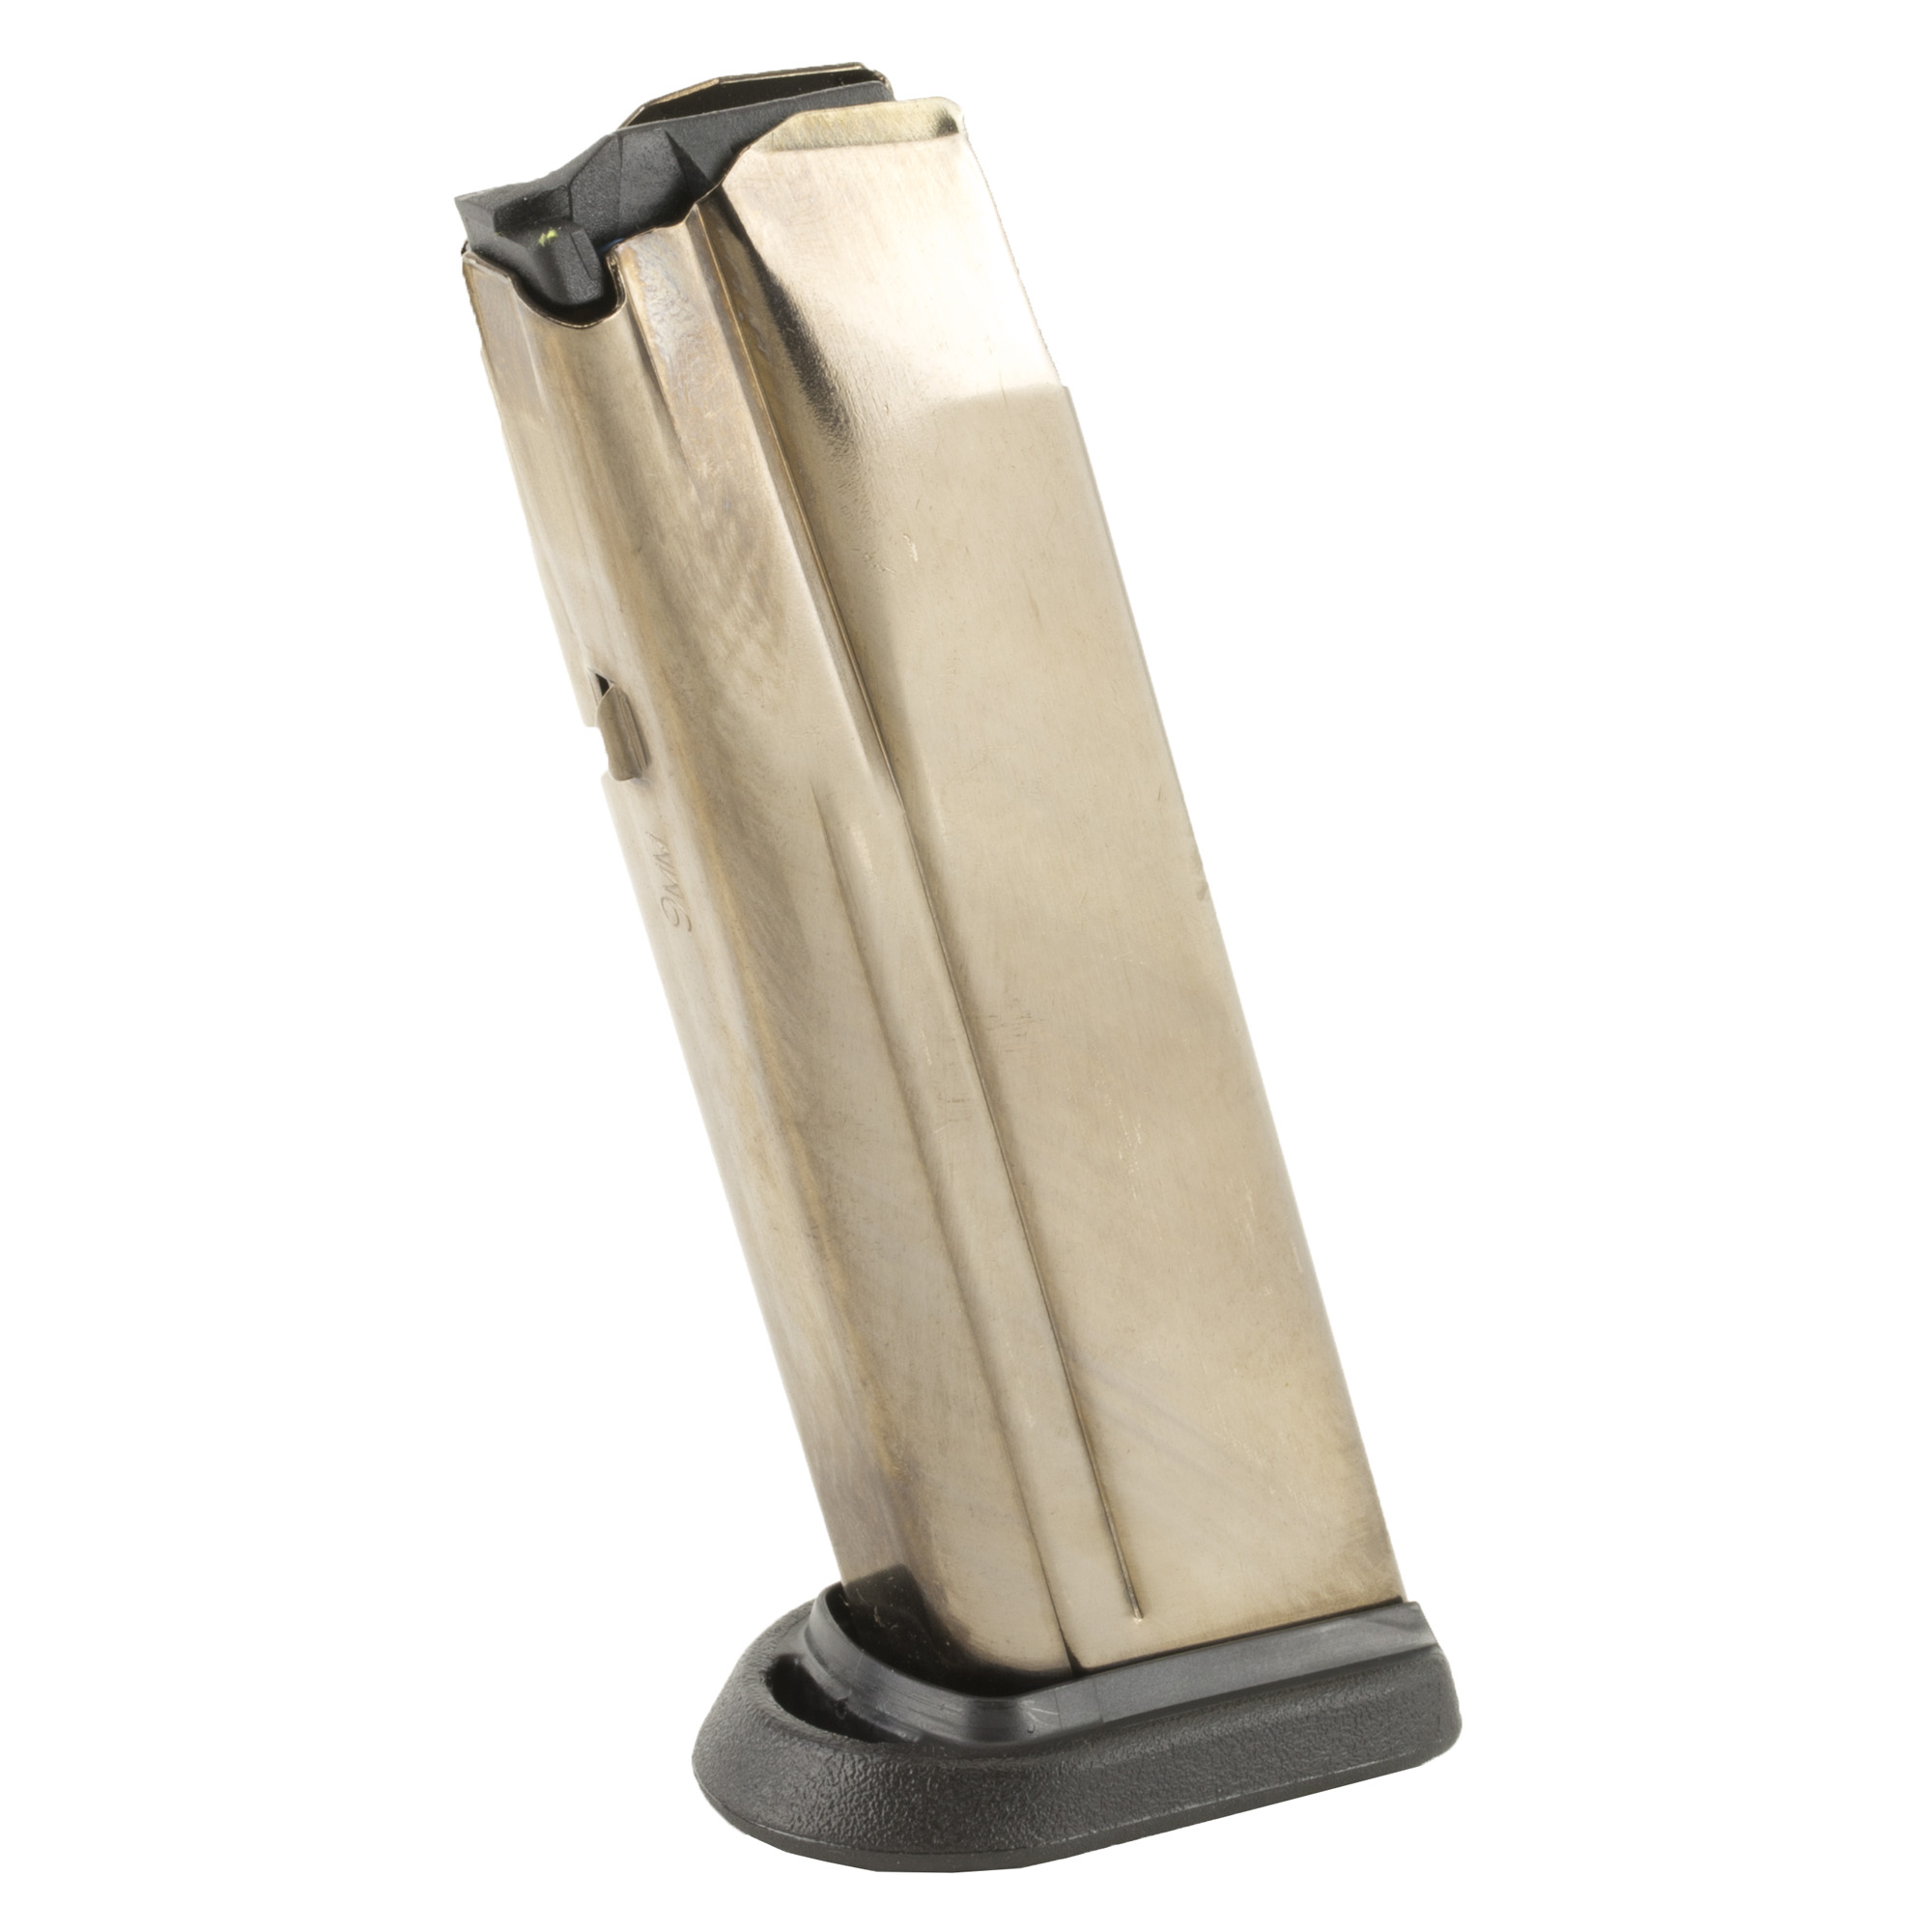 "This magazine is made to FN's specifications and tolerances using high quality materials that provide perfect fit"" durability and reliability."